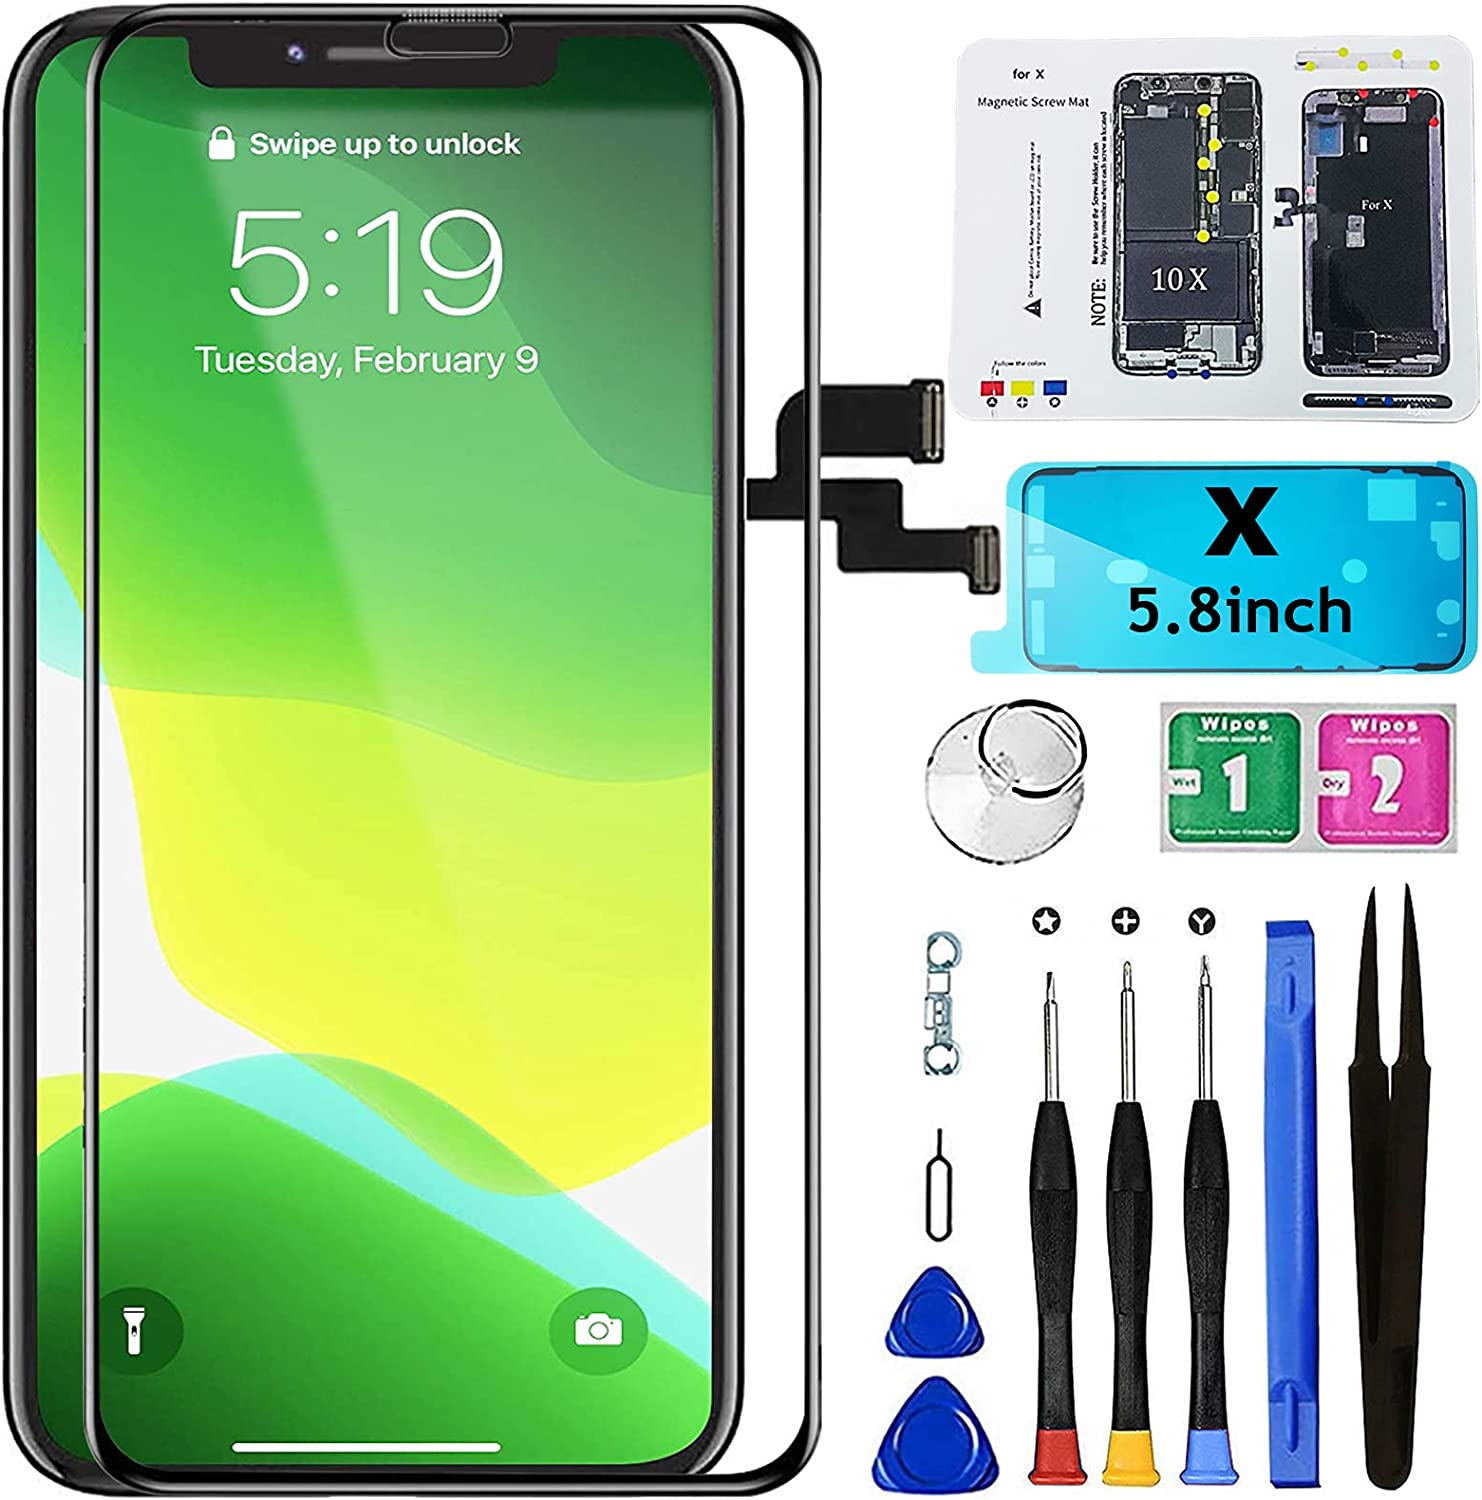 Mobkitfp for iPhone X Screen Replacement 5.8 inch, LCD Display Digitier with 3D Touch & Face ID for A1865/A1901/A1902 with Repair Tools+Waterproof Adhesive+Screen Protector